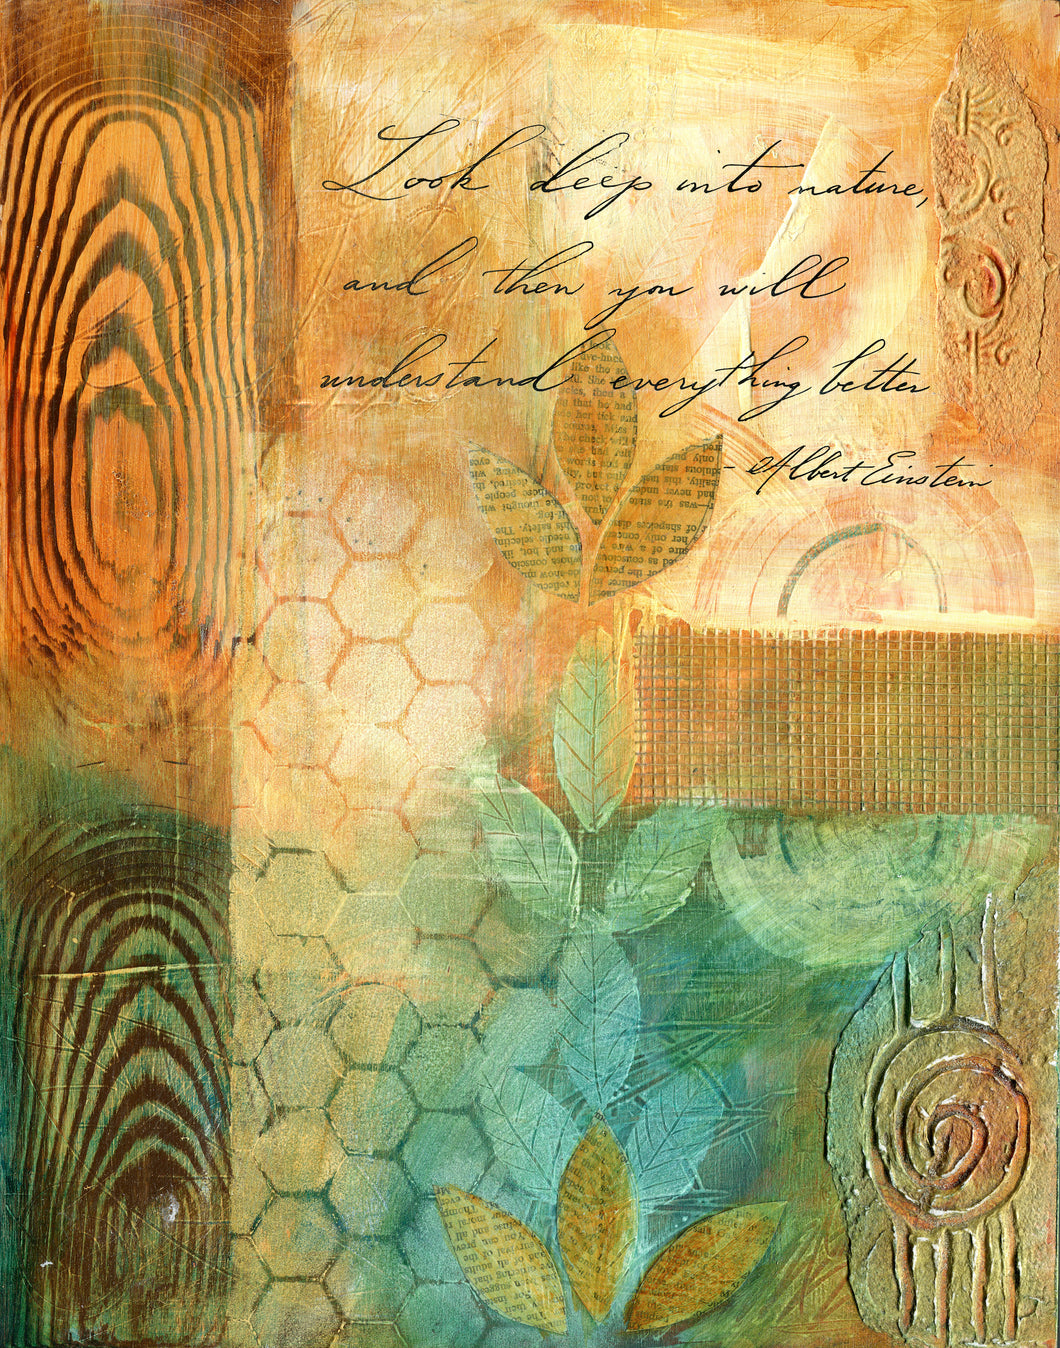 Calligraphy Painting - Texture of Nature II -  11 x 14 SALE